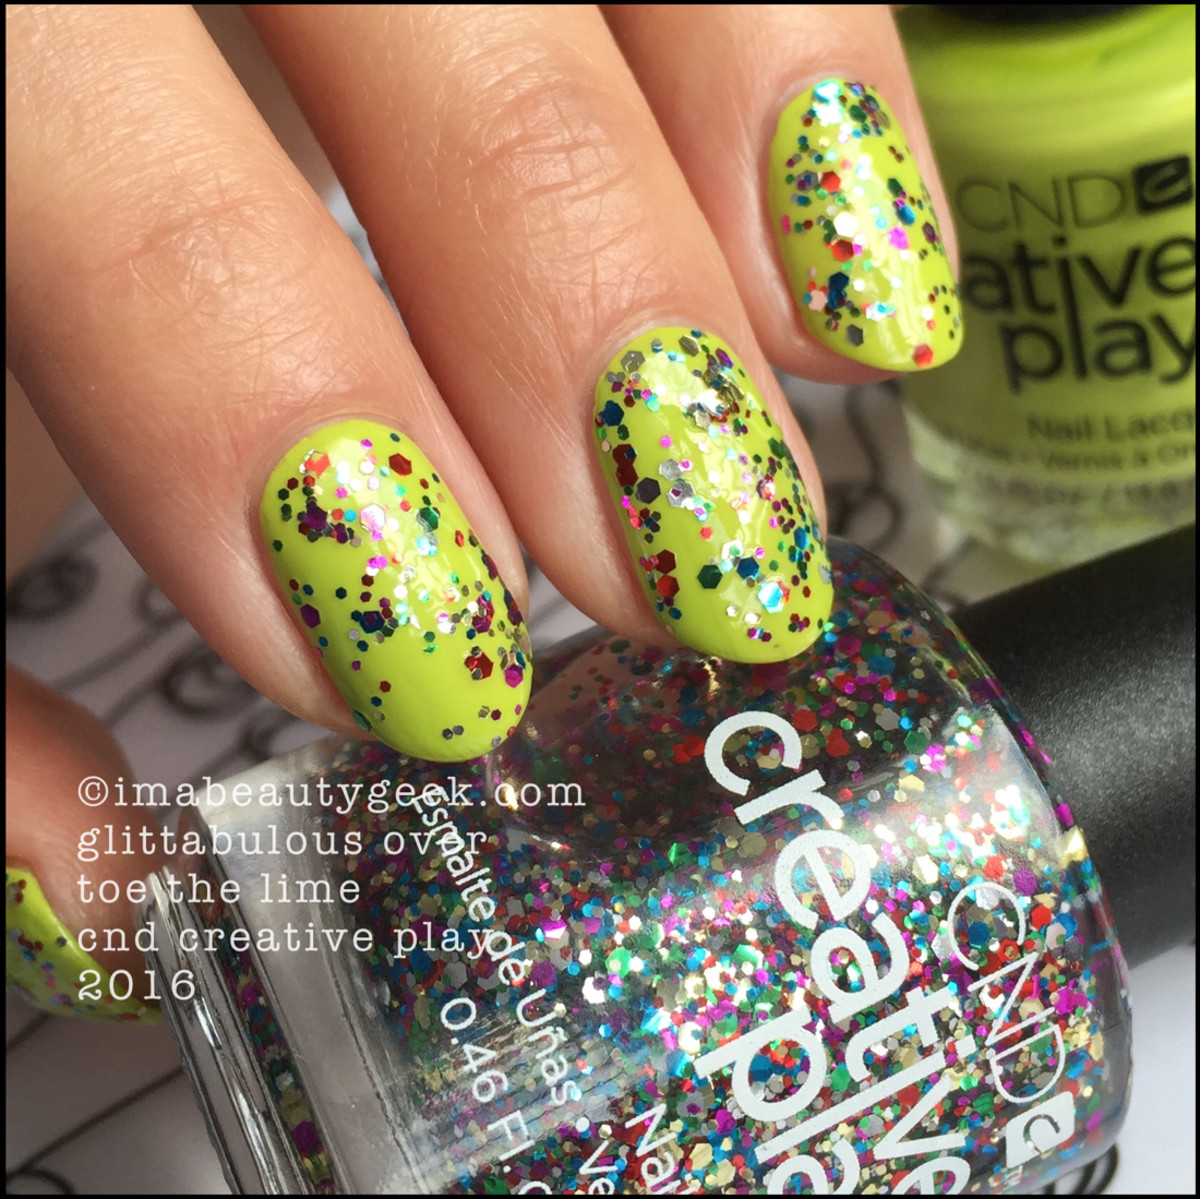 CND Creative Play Glittabulous over Toe The Lime_CND Creative Play Nail Polish Swatches 2016